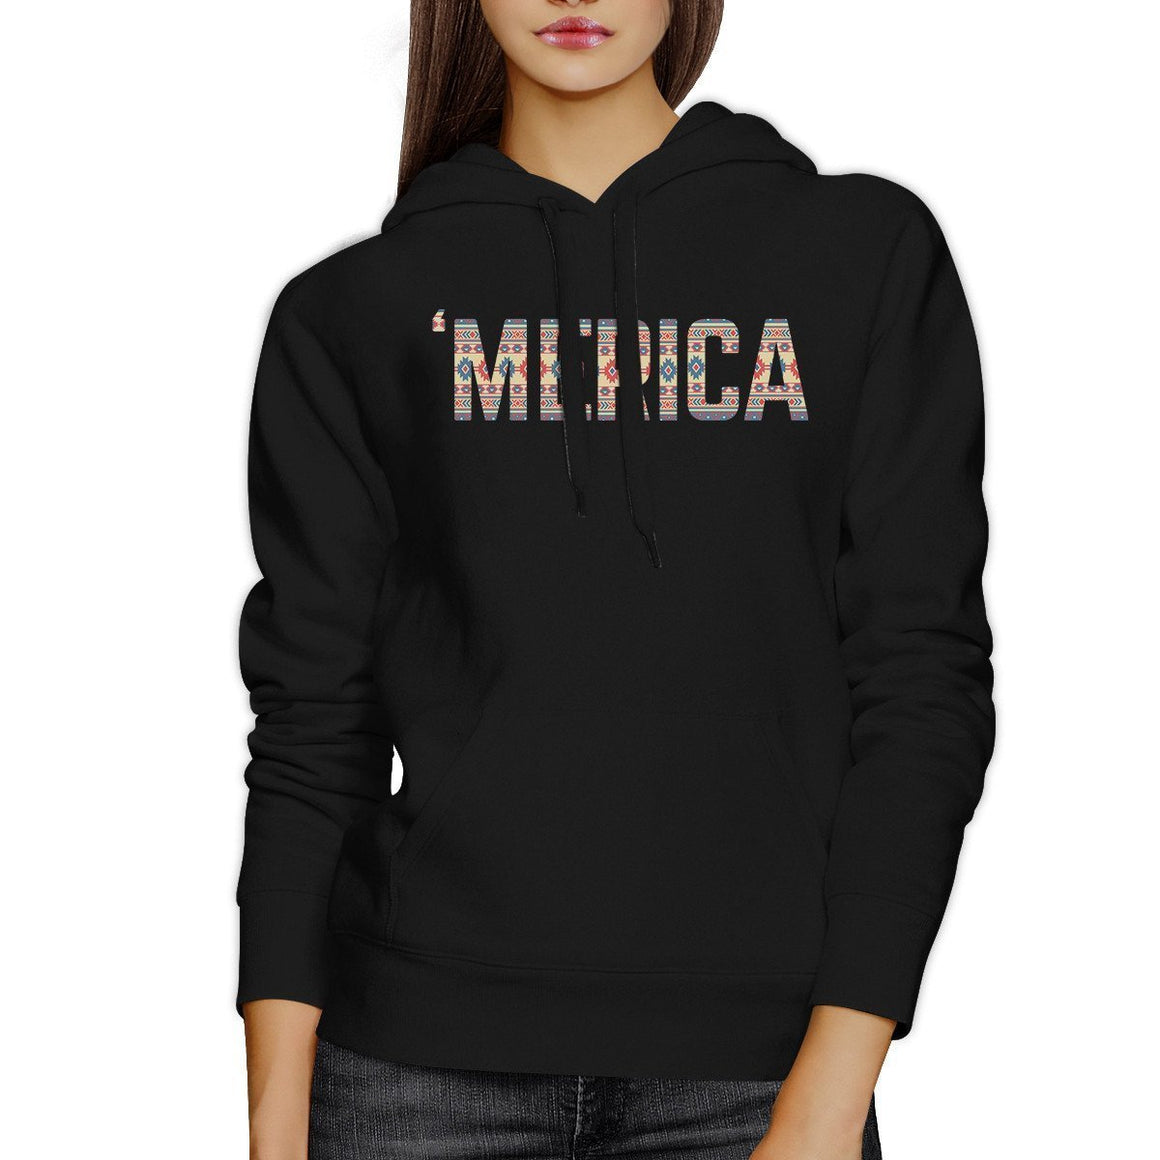 'Merica Unique Tribal Pattern Pullover Hoodie For 4th Of July